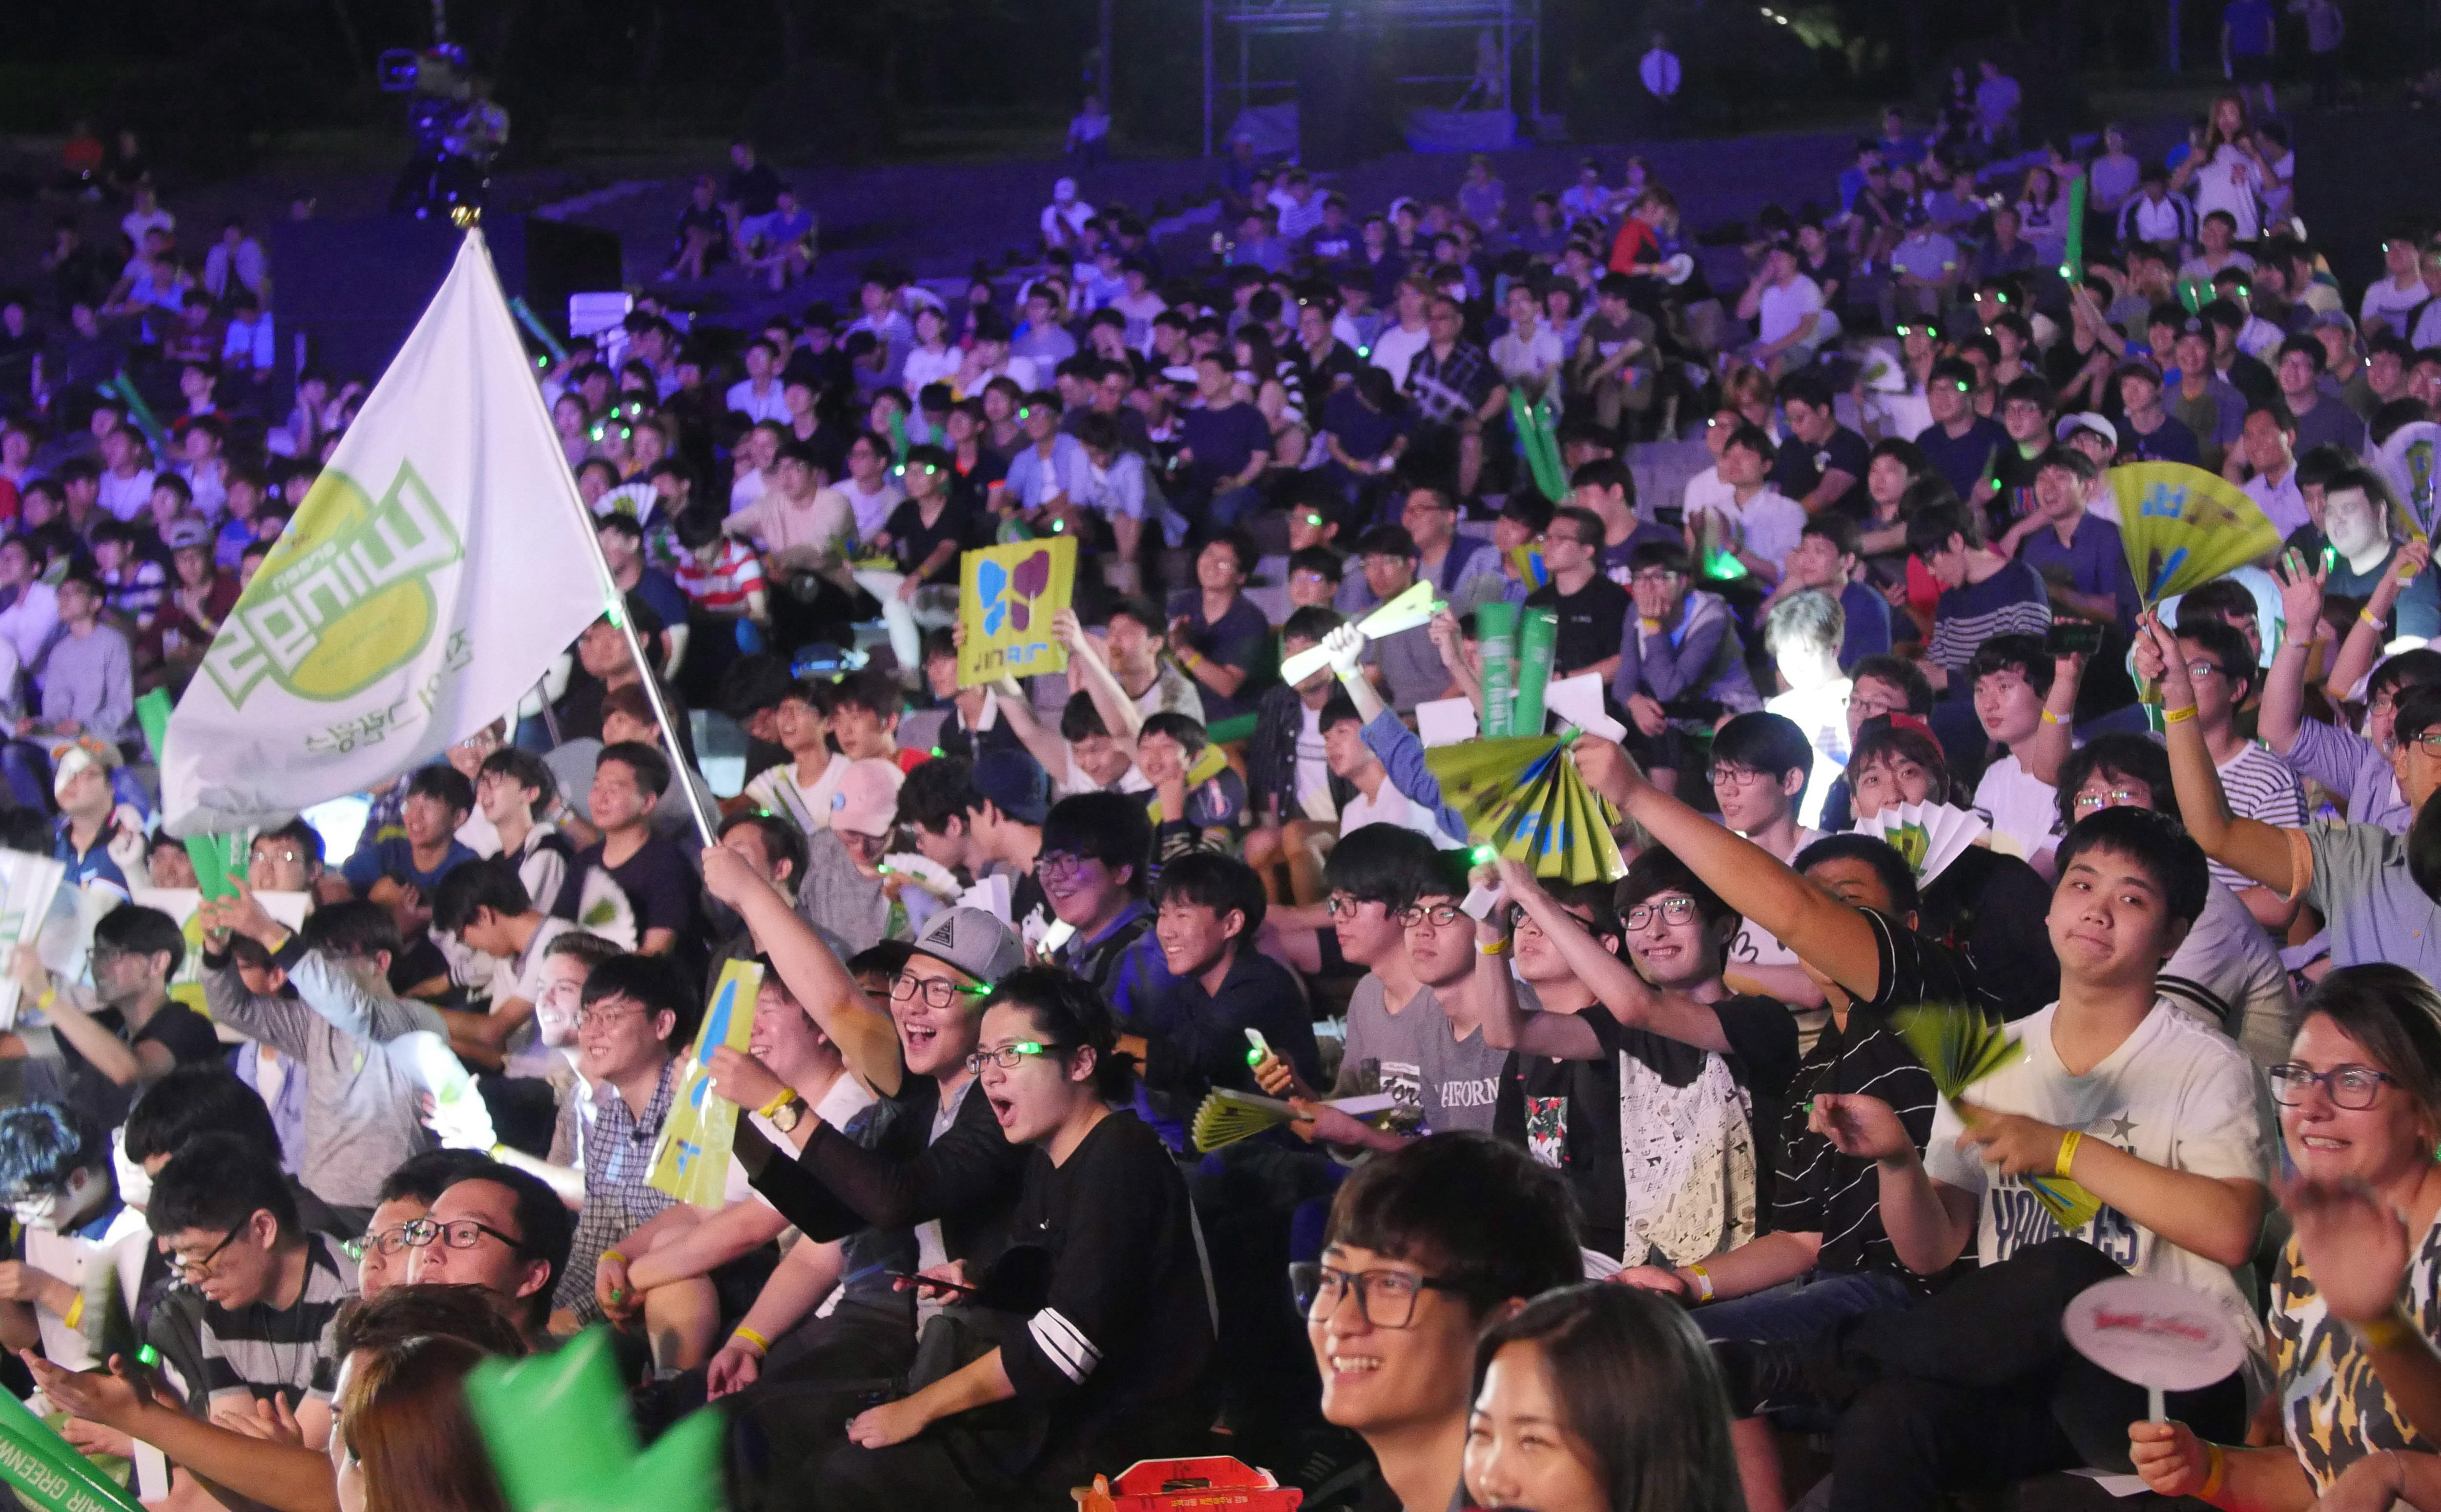 In this Sept. 3, 2016, photo, fans of Jin Air Green Wings celebrate the victory together after the 2016 SK Telecom StarCraft final match between KT Rolster and Jin Air Green Wings at Children's Grand park in Seoul, South Korea. South Korea has the biggest e-Sports industry in the world with professional leagues and broadcasting channels. (AP Photo/Jungho Choi)